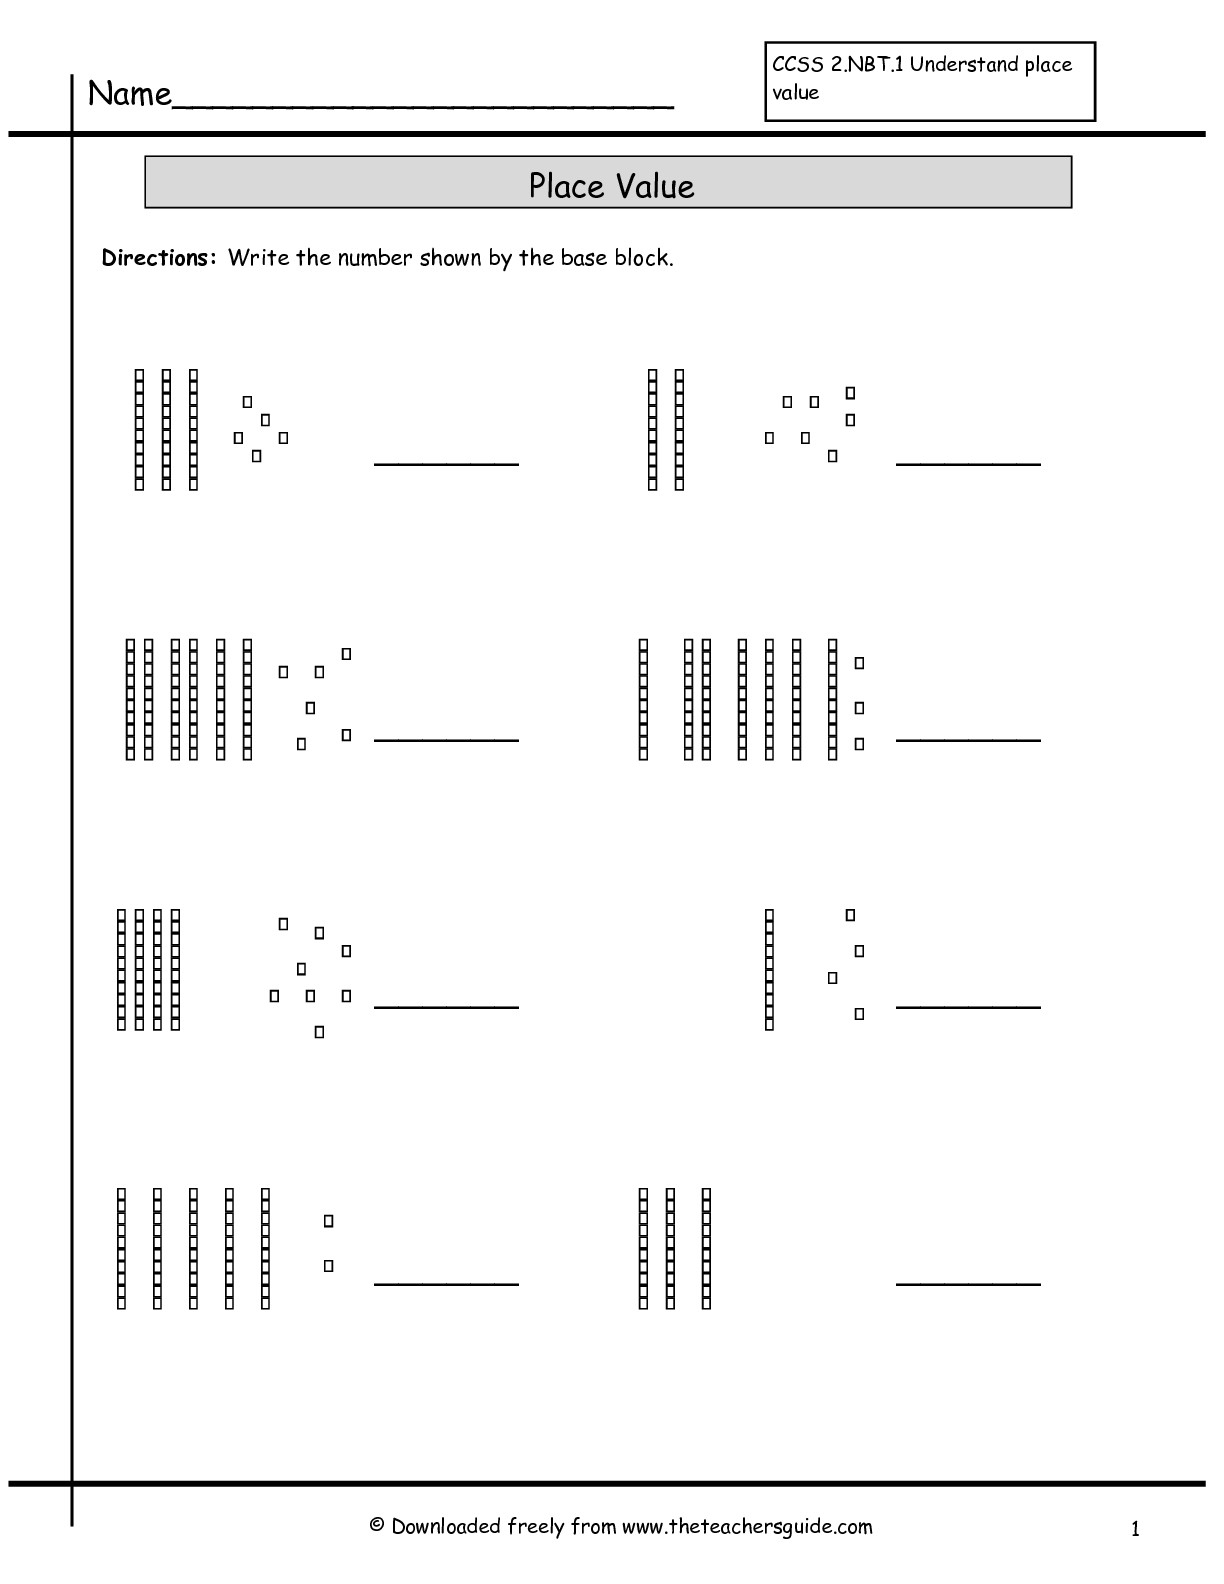 Place Value Worksheets From The Teacher's Guide - Free Printable Base Ten Block Worksheets